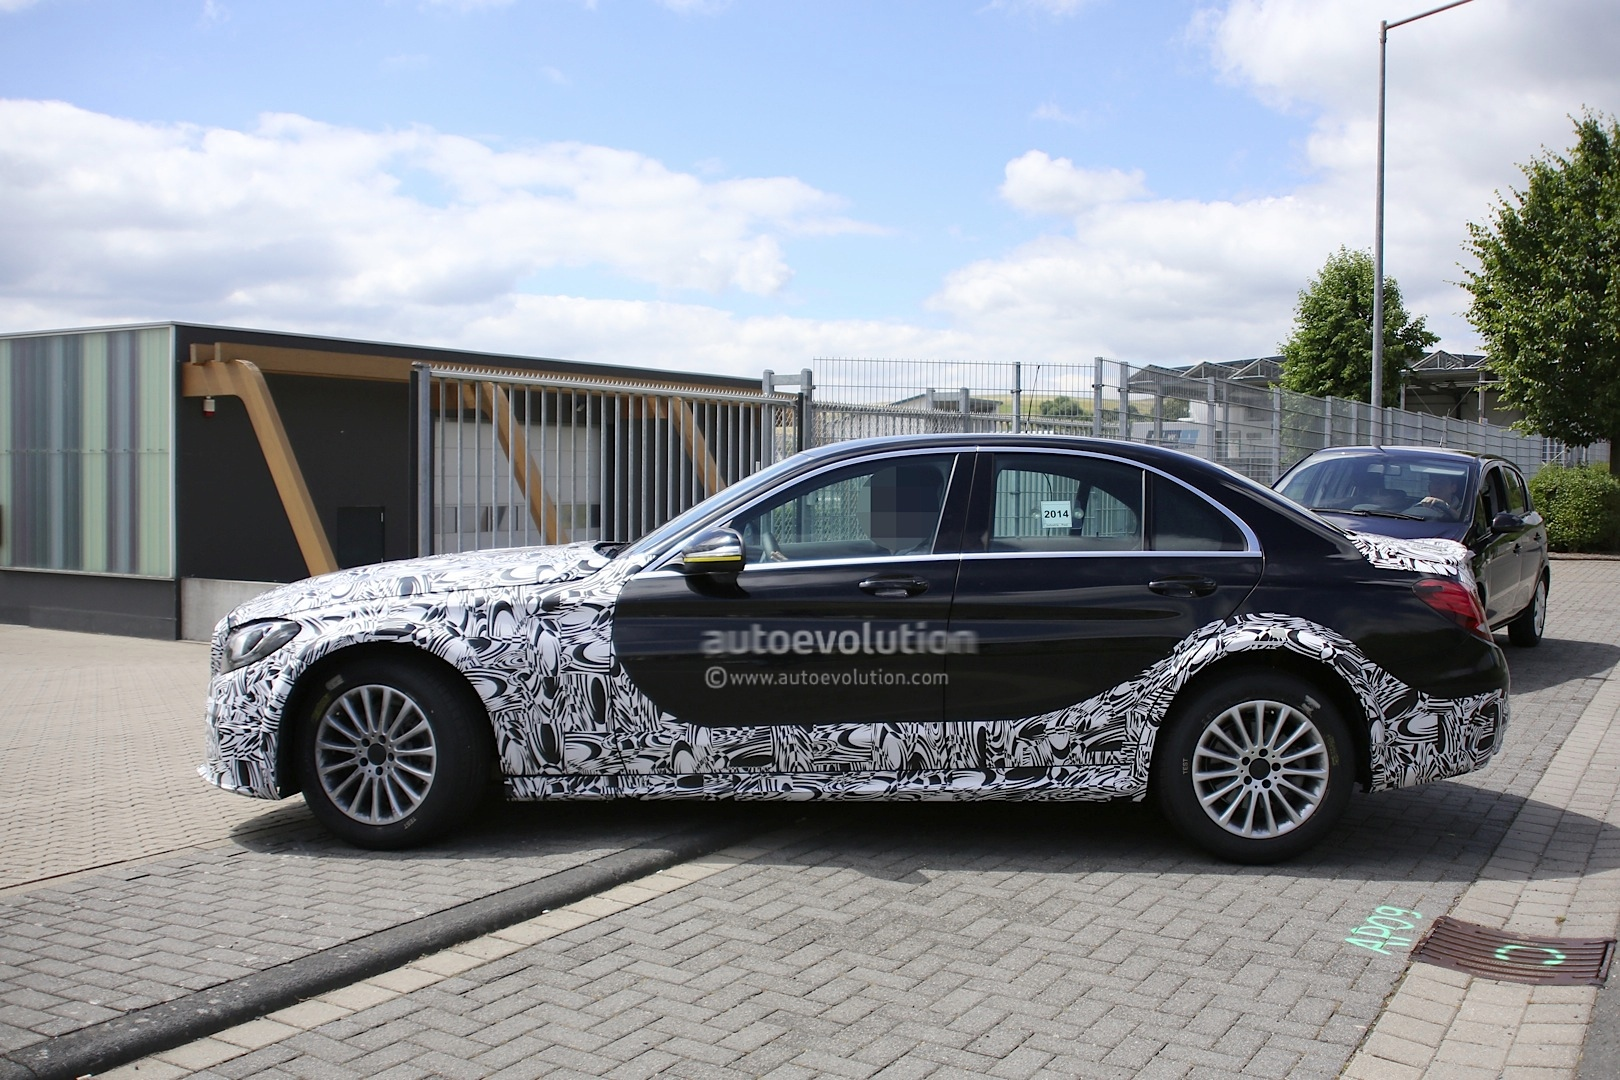 2016 - [Mercedes] Classe E [W213] - Page 2 E-class-w213-mule-based-on-current-c-class-spied-photo-gallery_10